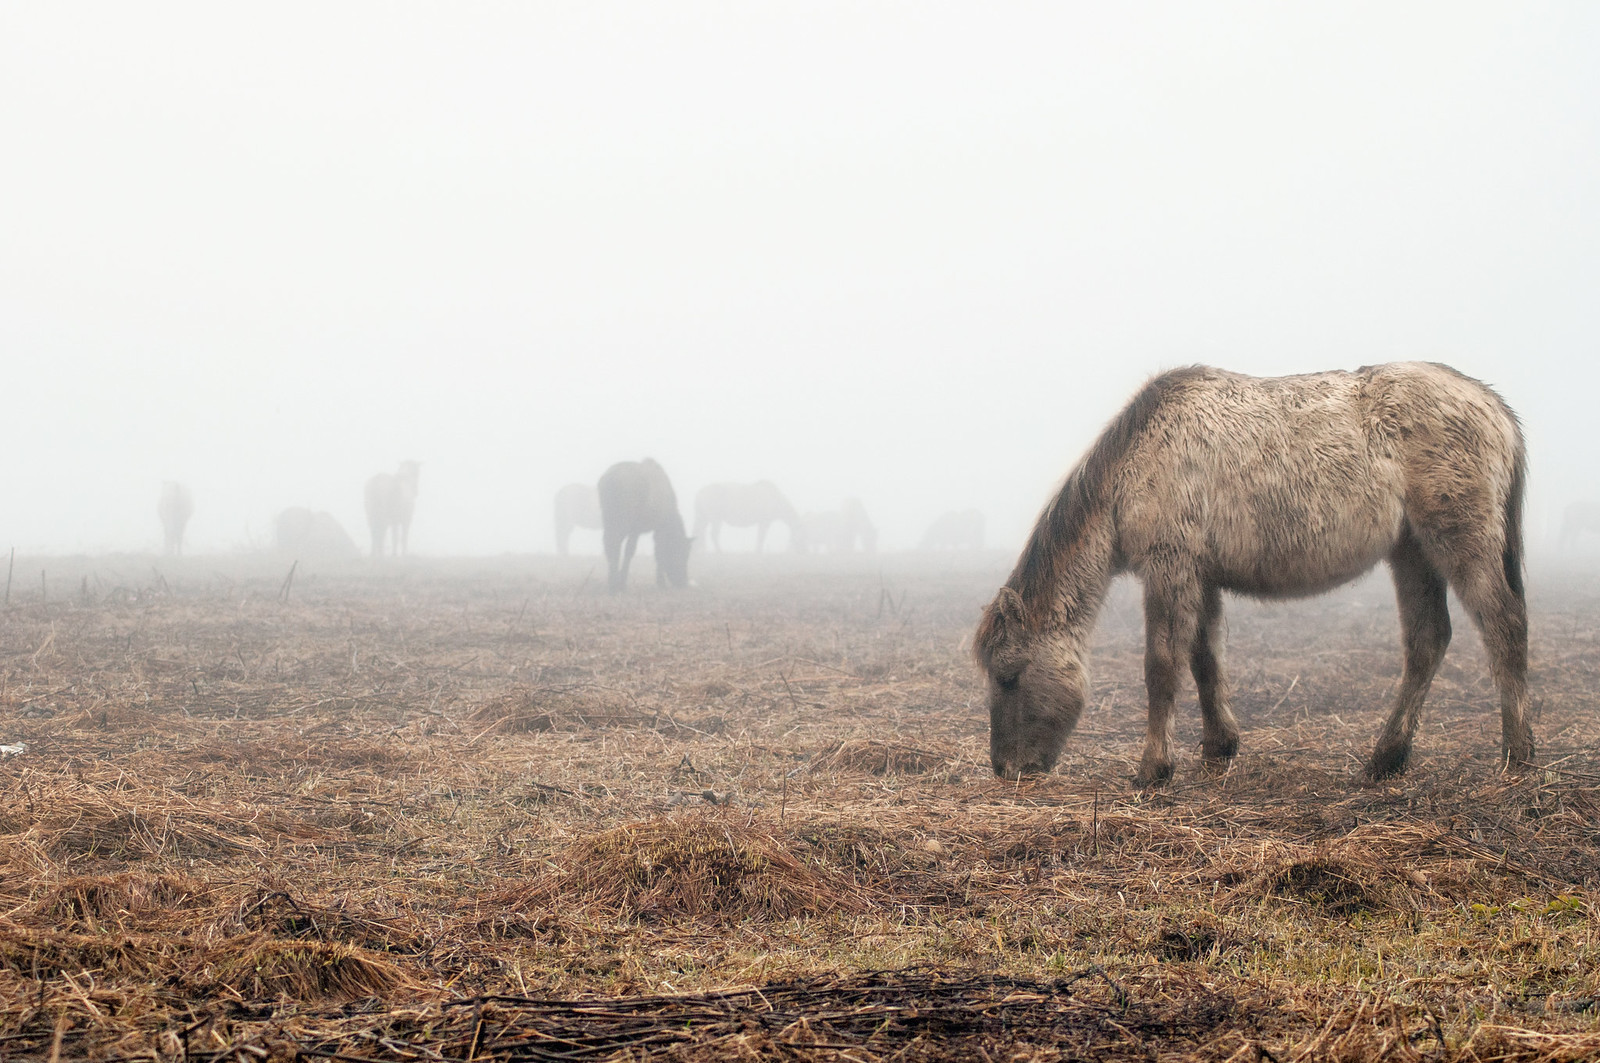 Horses in the fog 29.03.2015